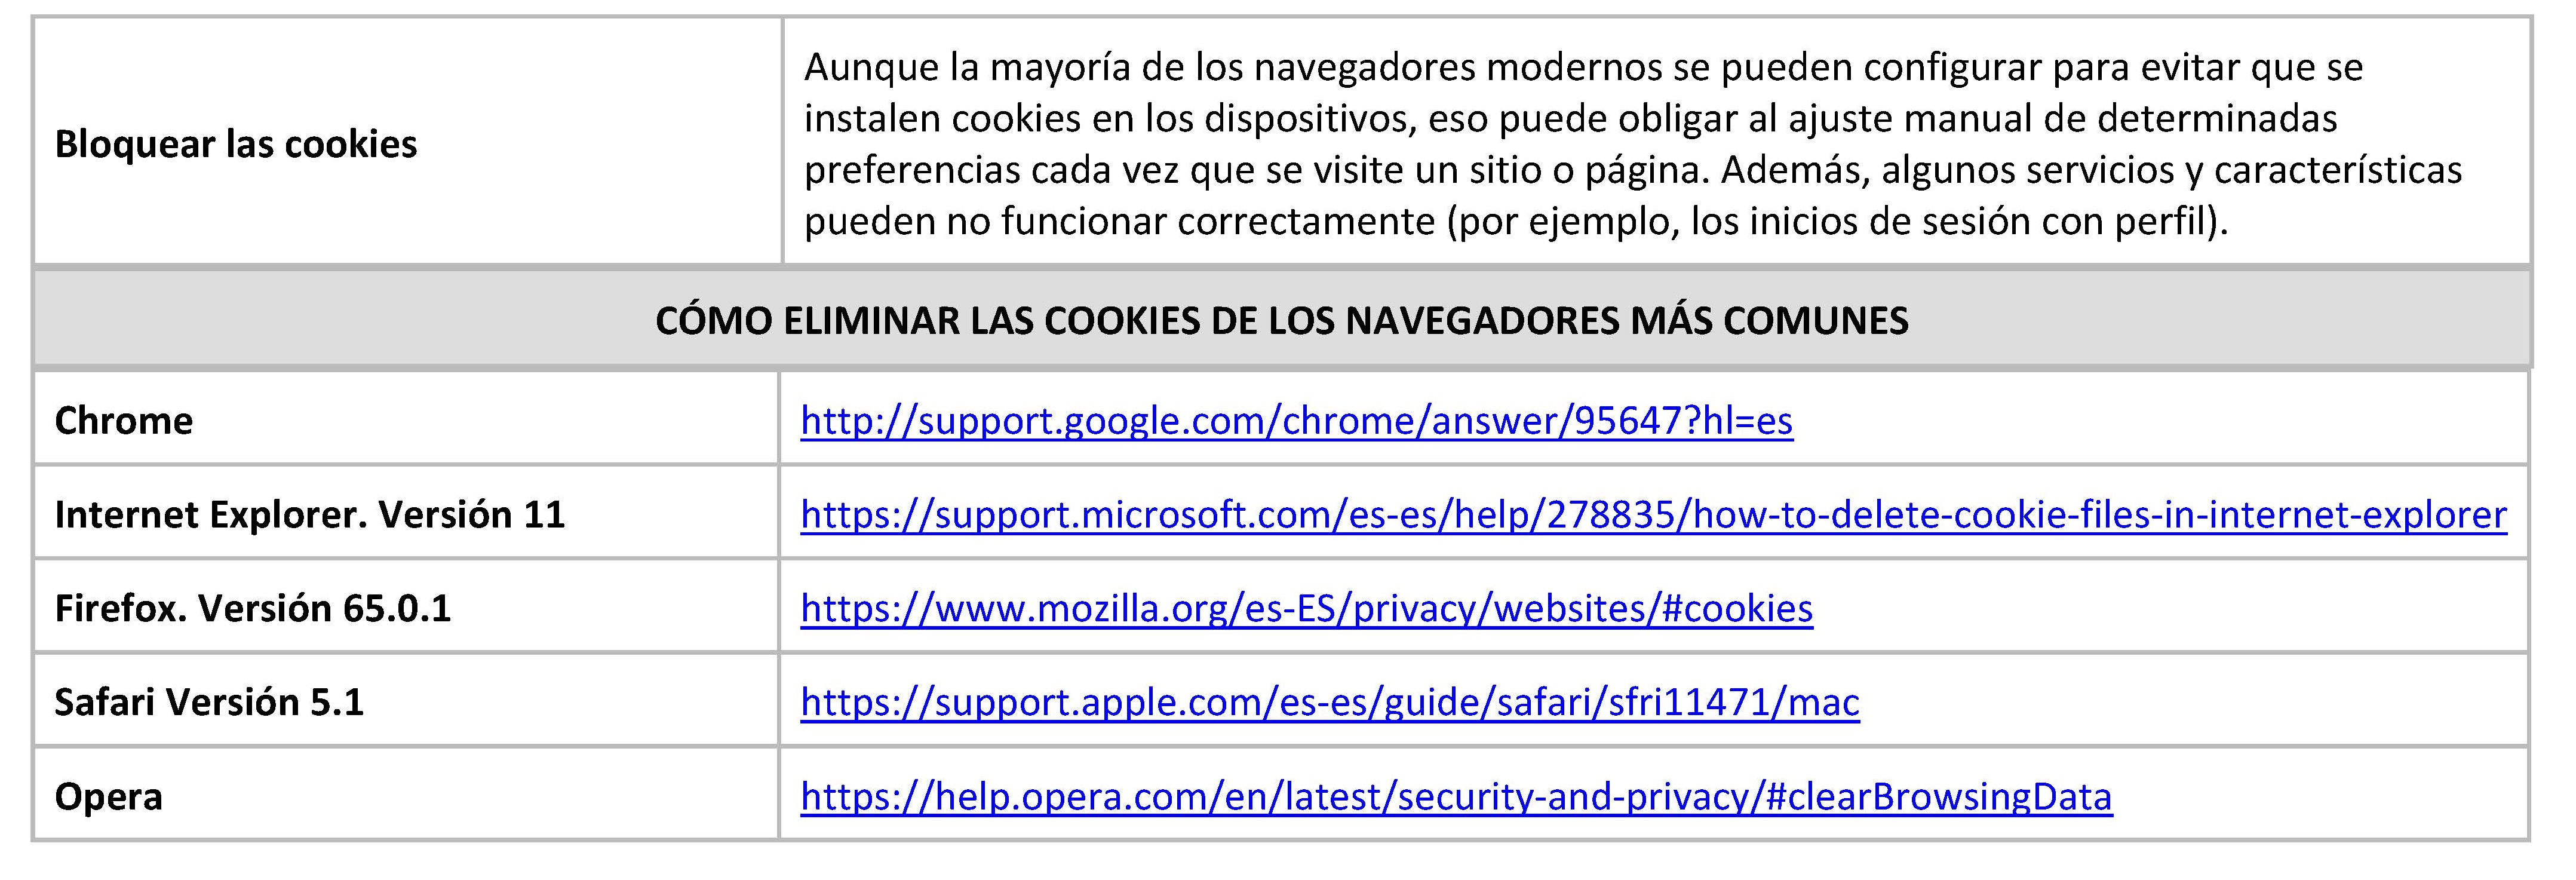 Consent cookies_Página_10 recortada